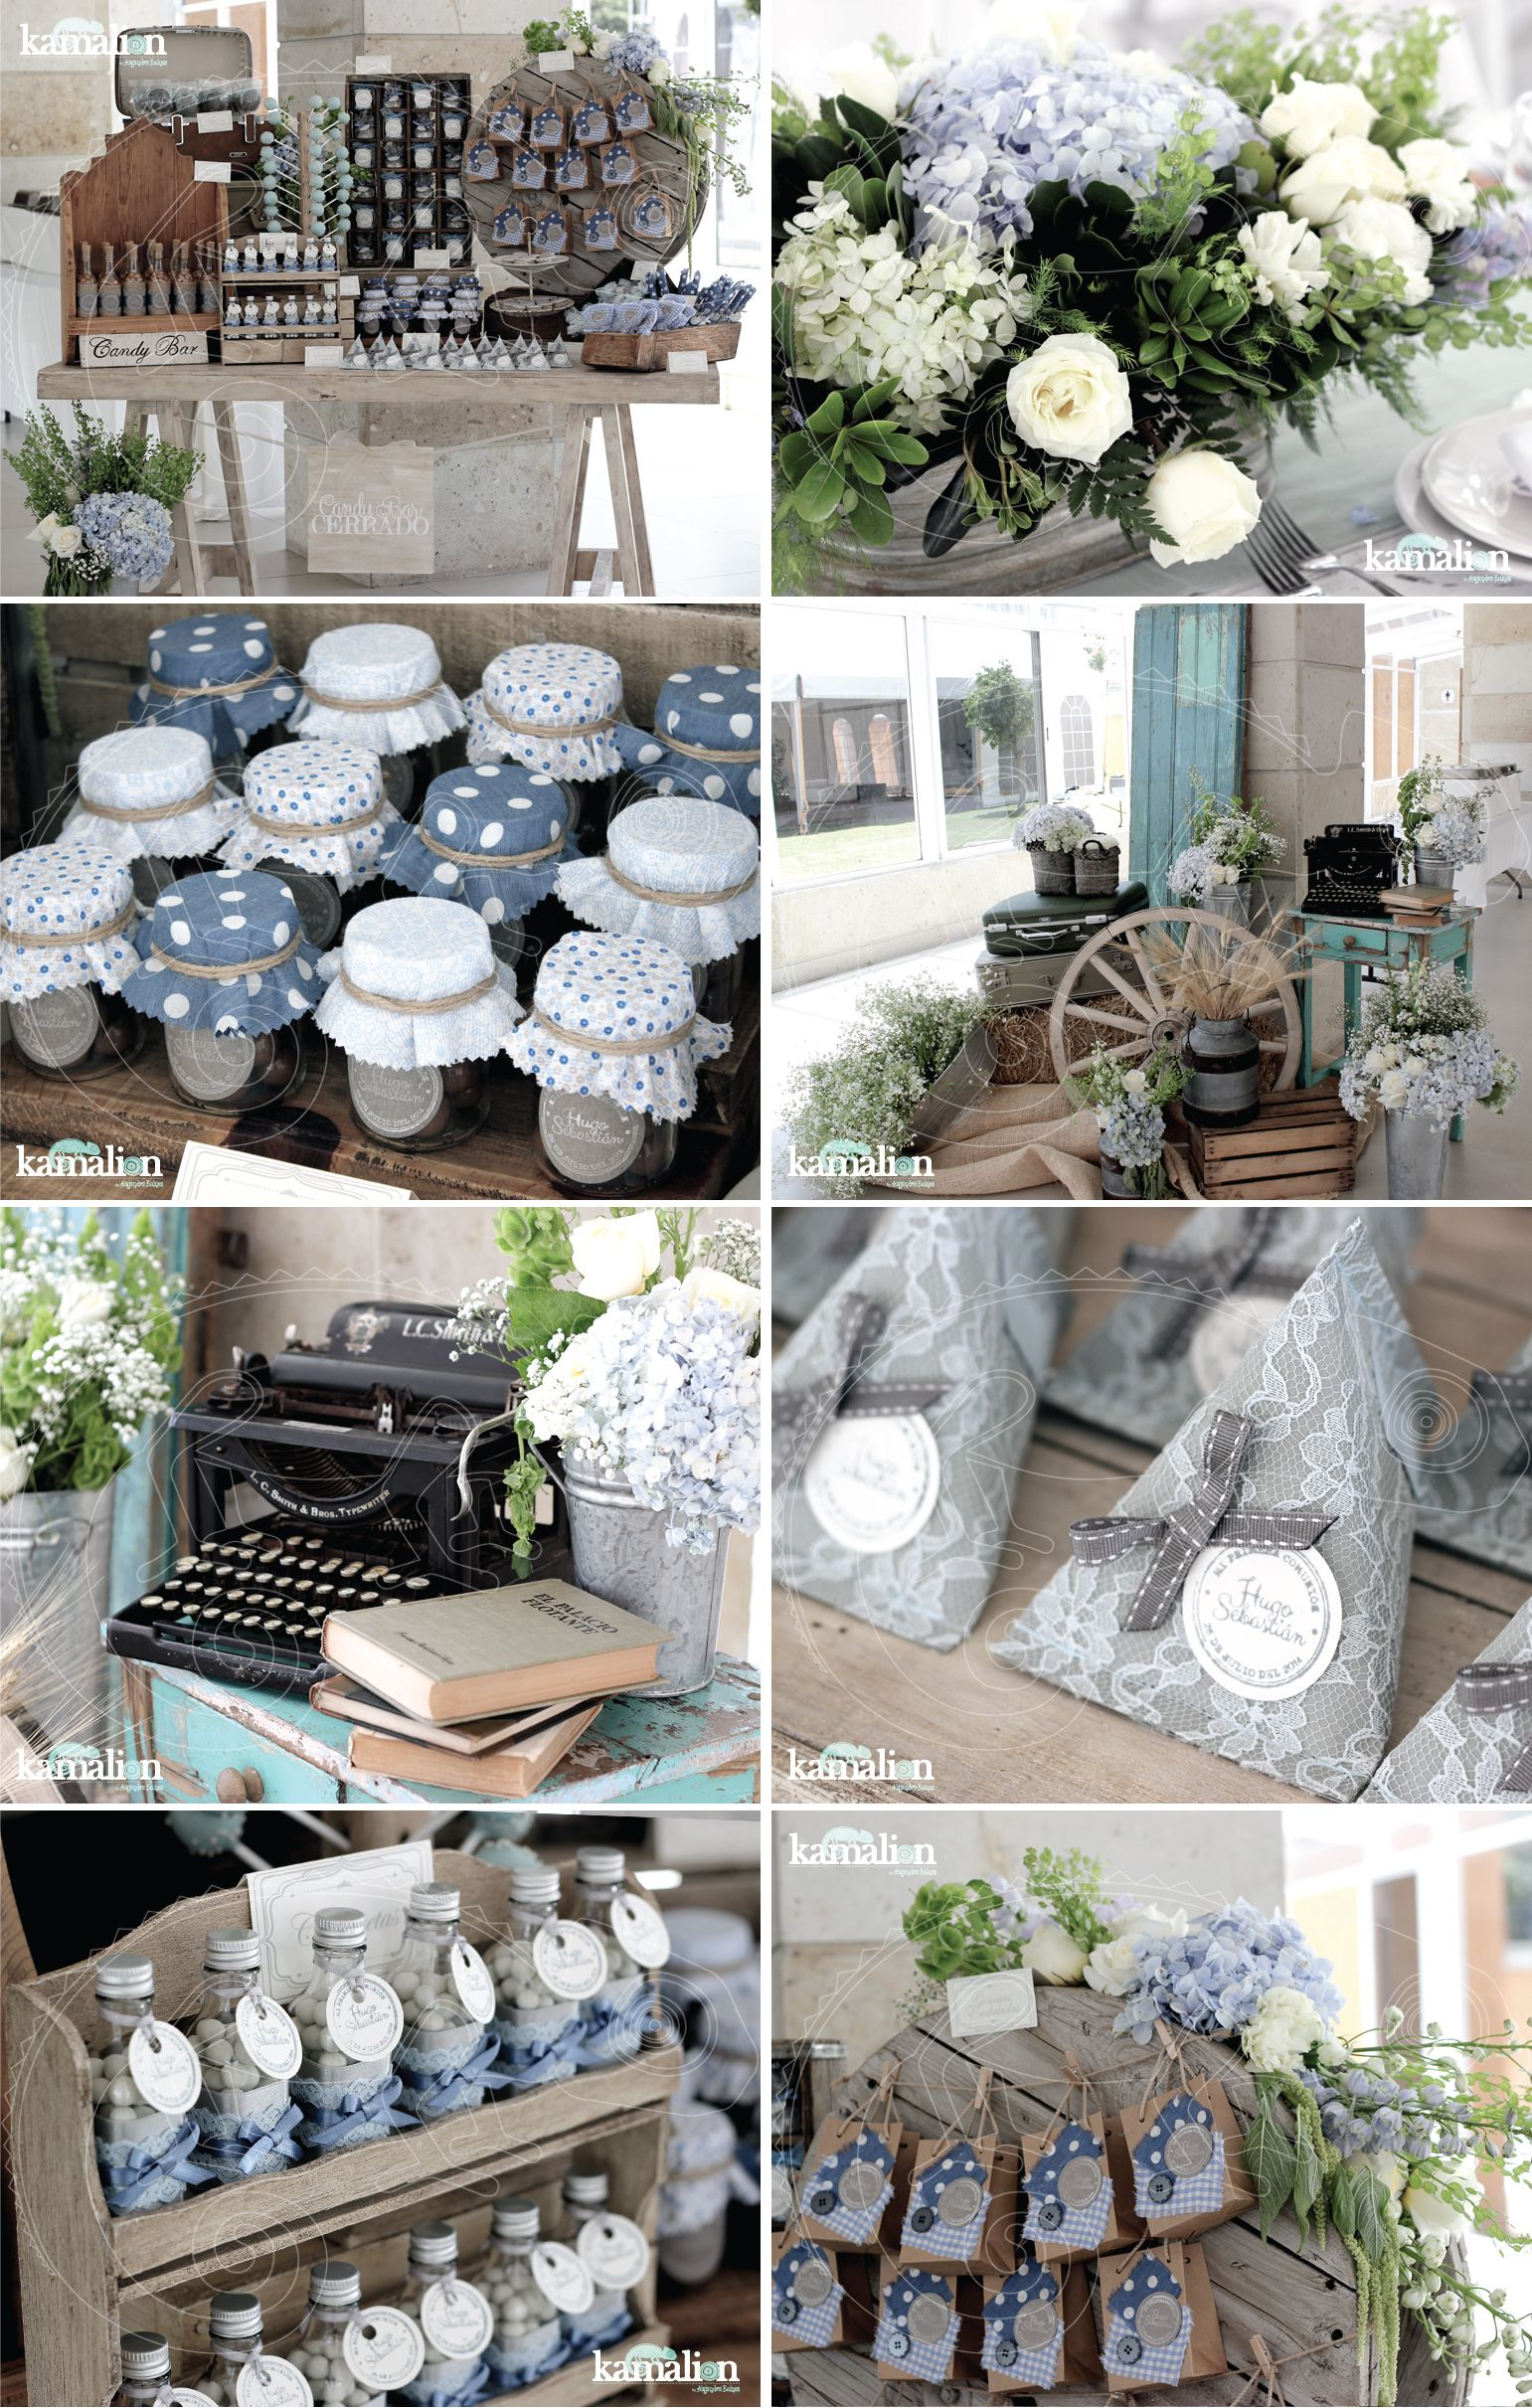 Light blue wedding decoration ideas  kamalion  Boda  Wedding  Country  Rustic  Azul